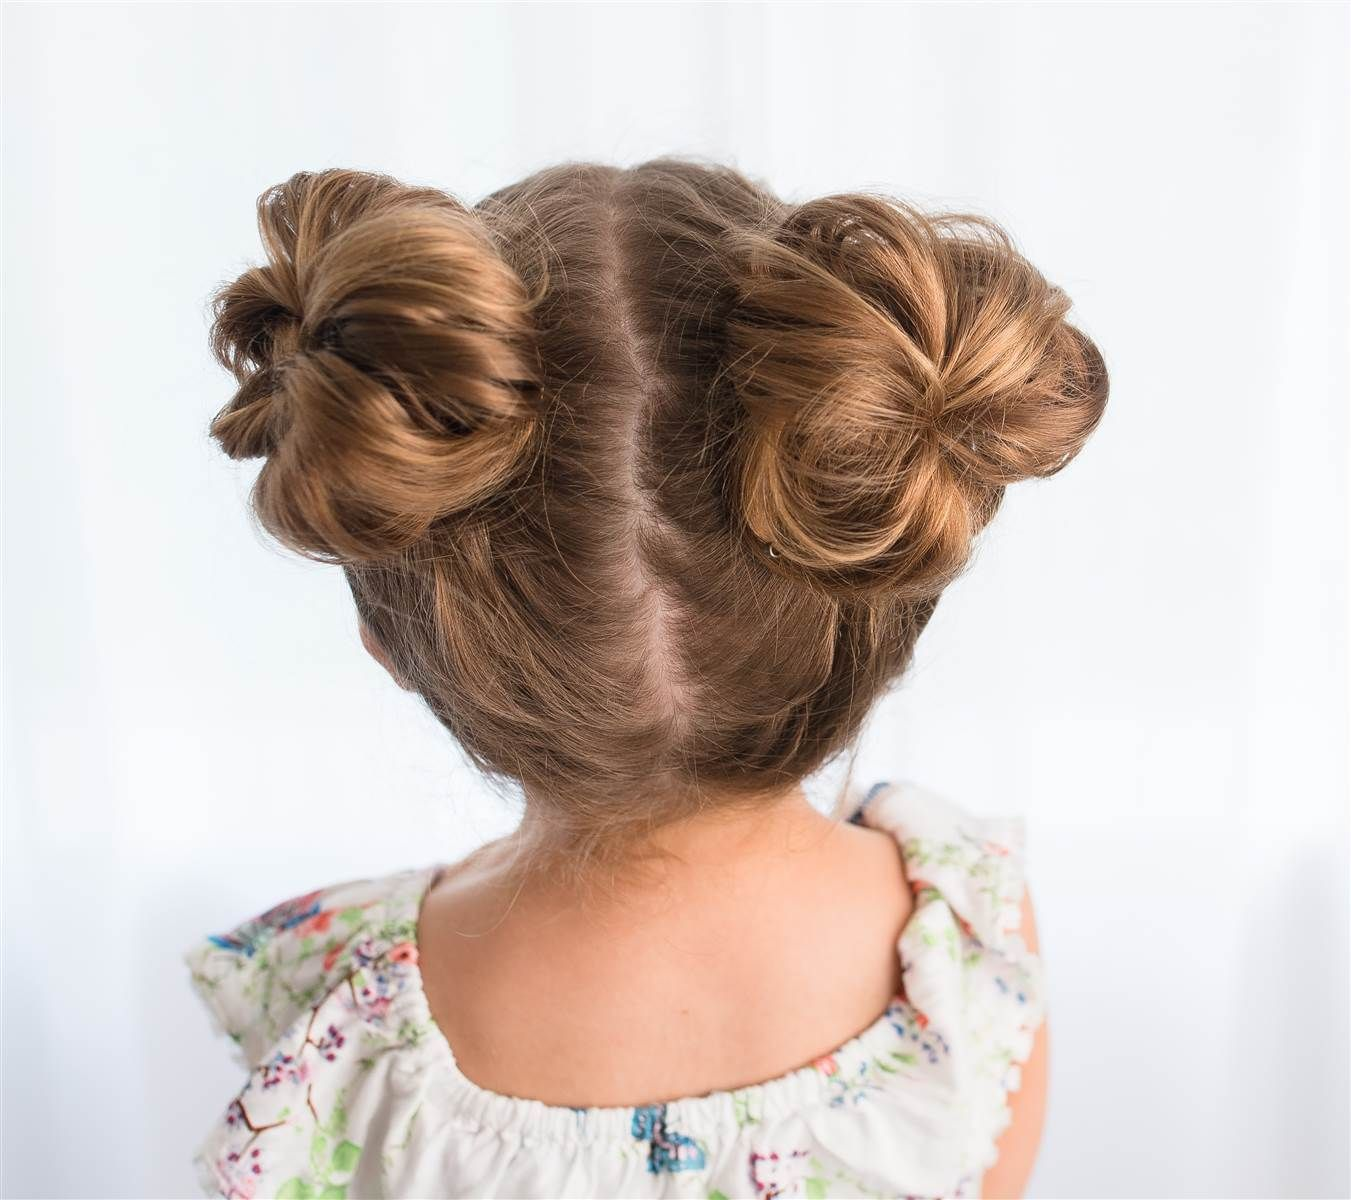 5 fast easy cute hairstyles for girls  Hair style Girl